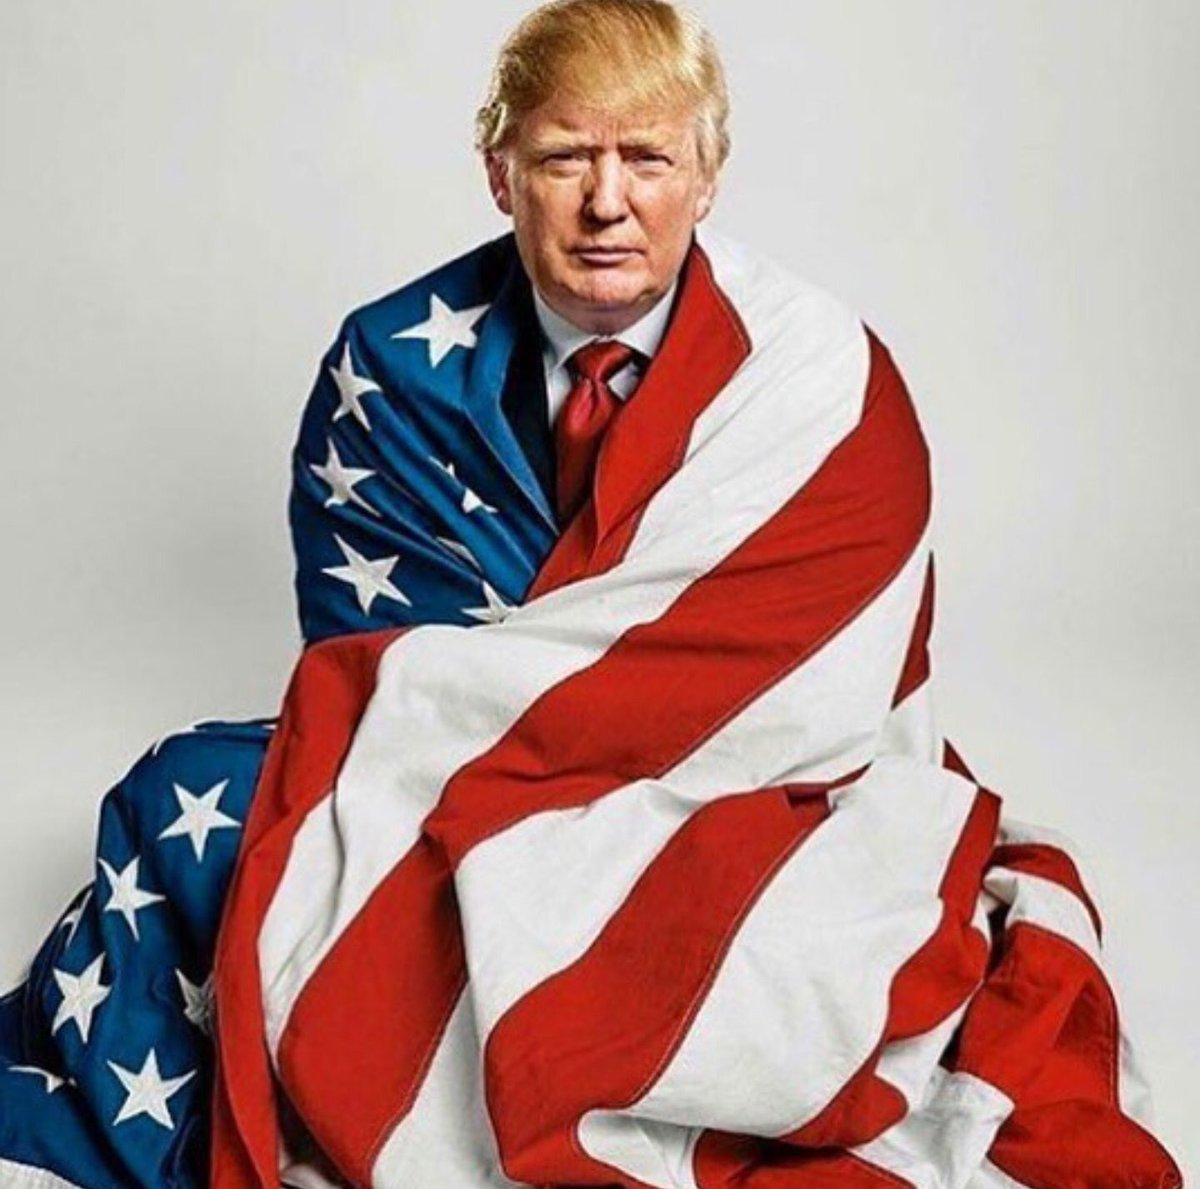 AFTER 8 YEARS OF APOLOGIES  It\'s GREAT having a President who\'s PROUD to be an American     #GodBlessAmerica  #MAGA